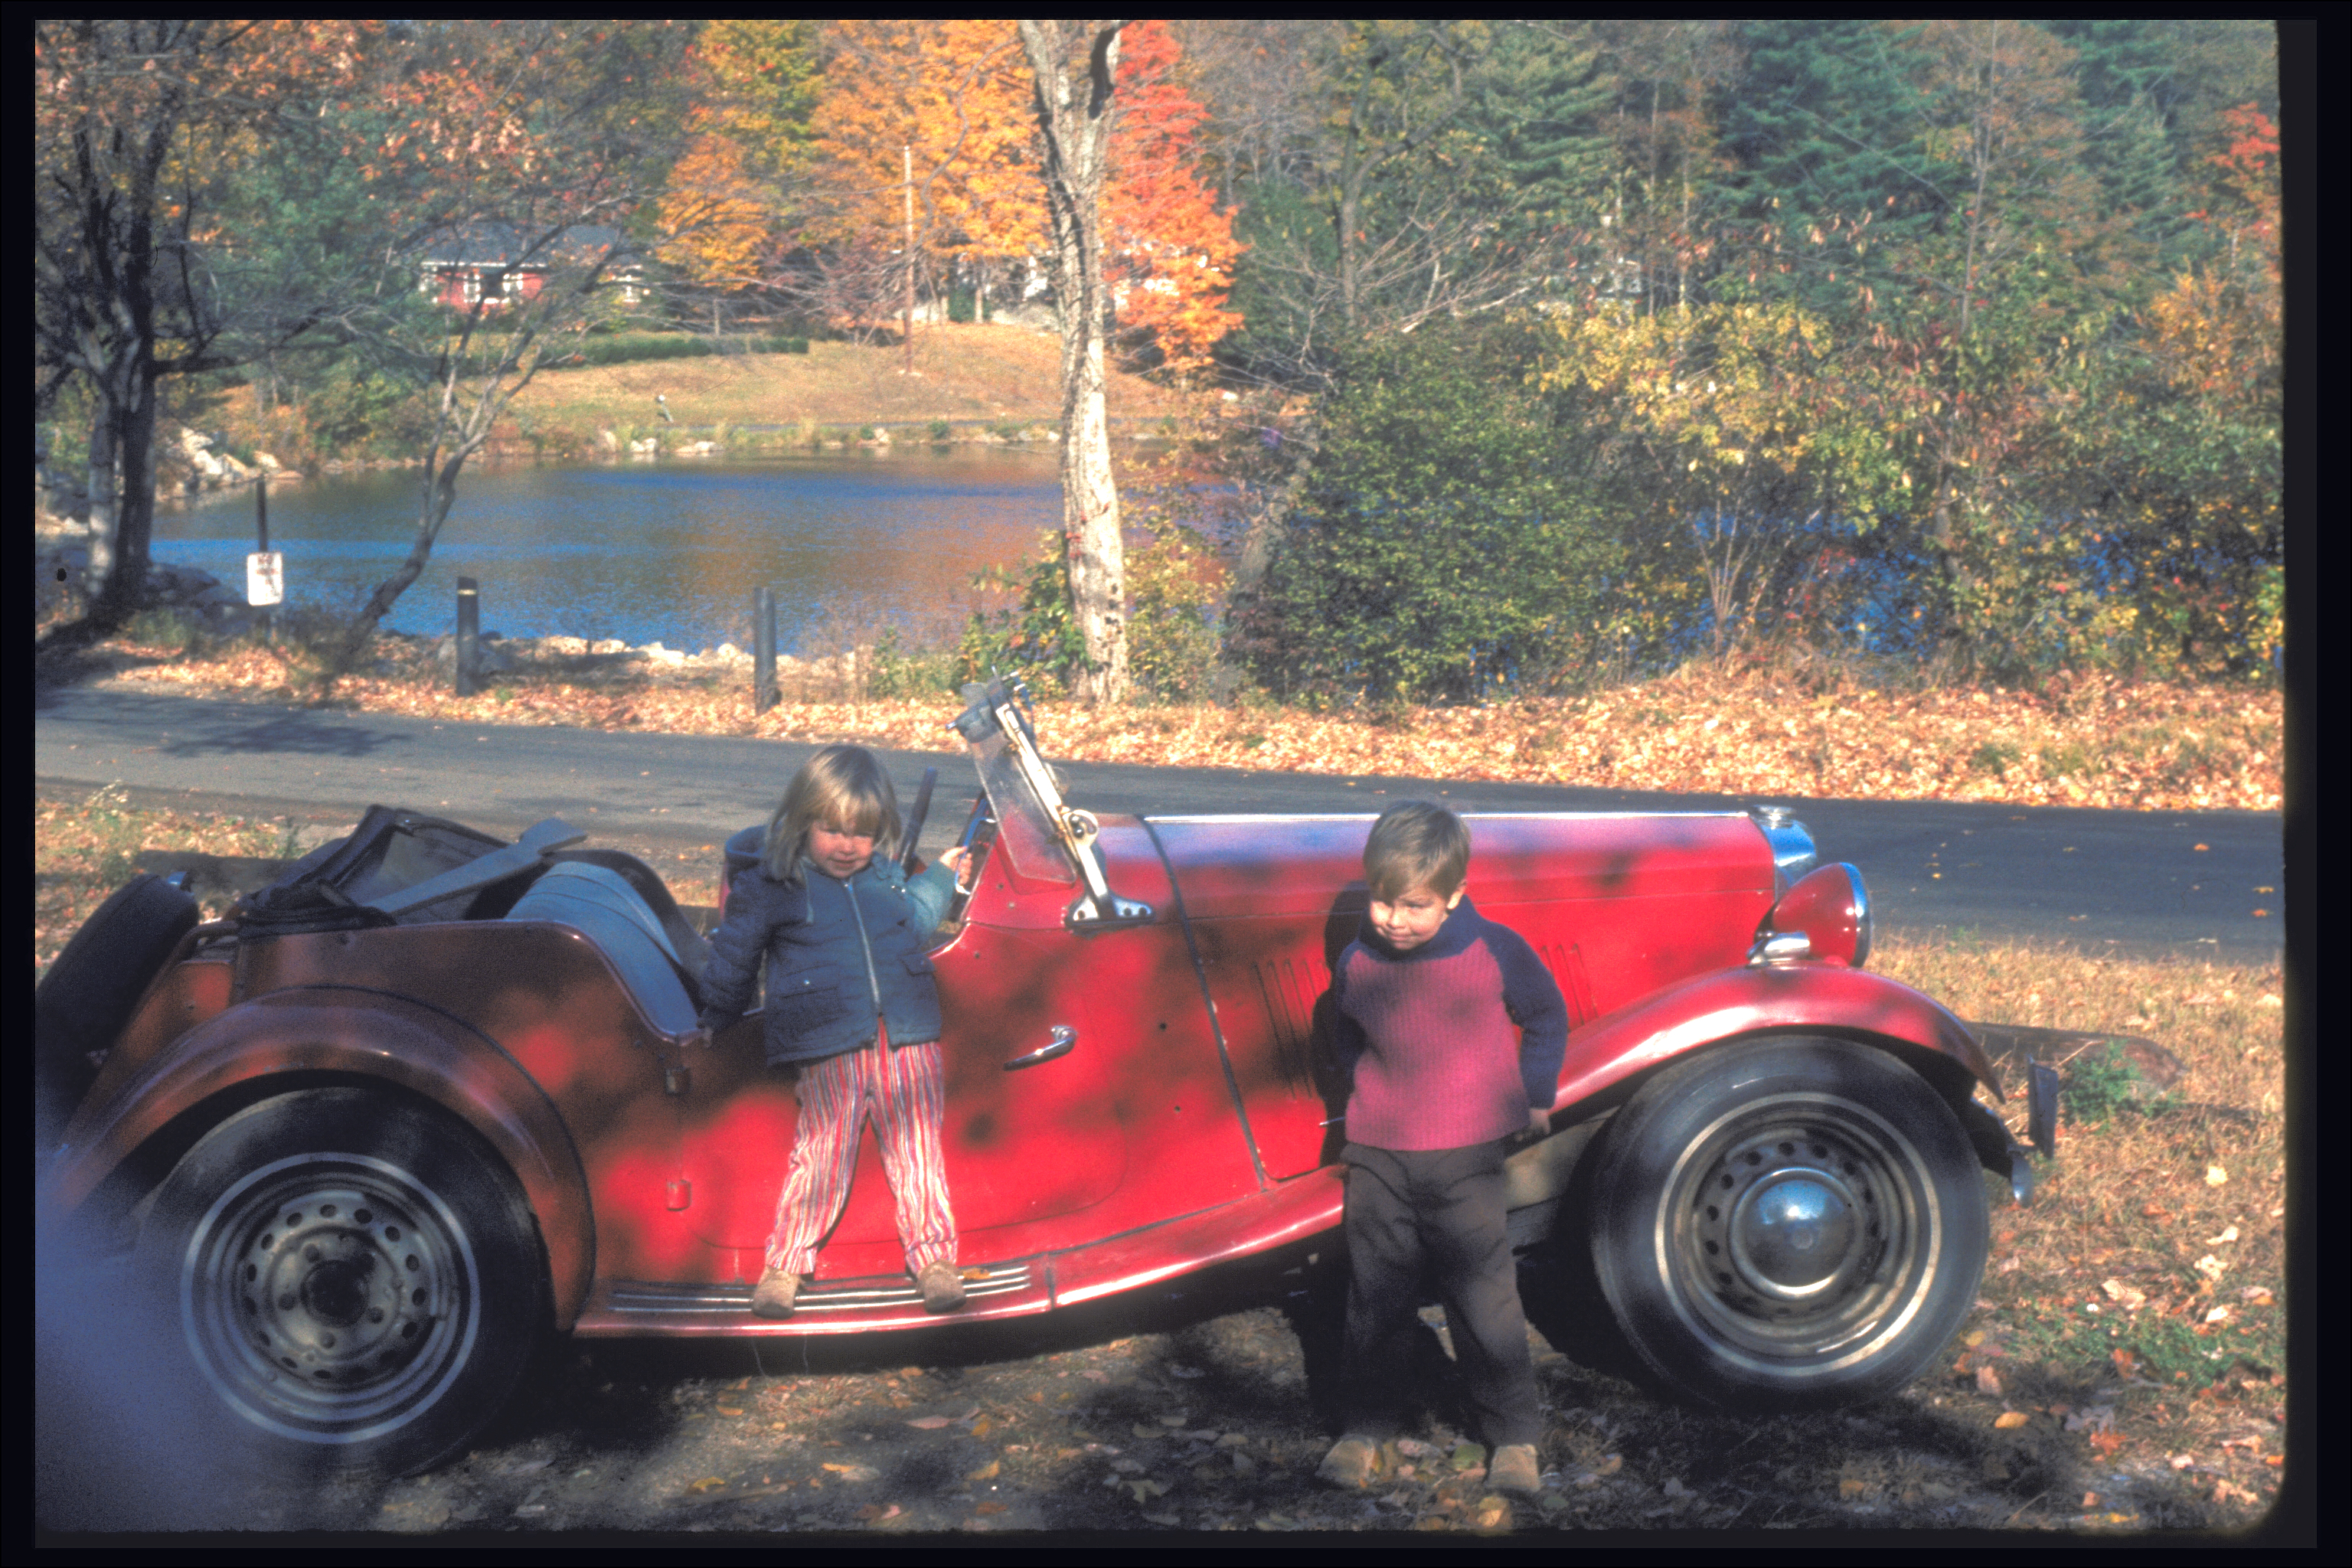 Rob and Miriam On the MG, 1974